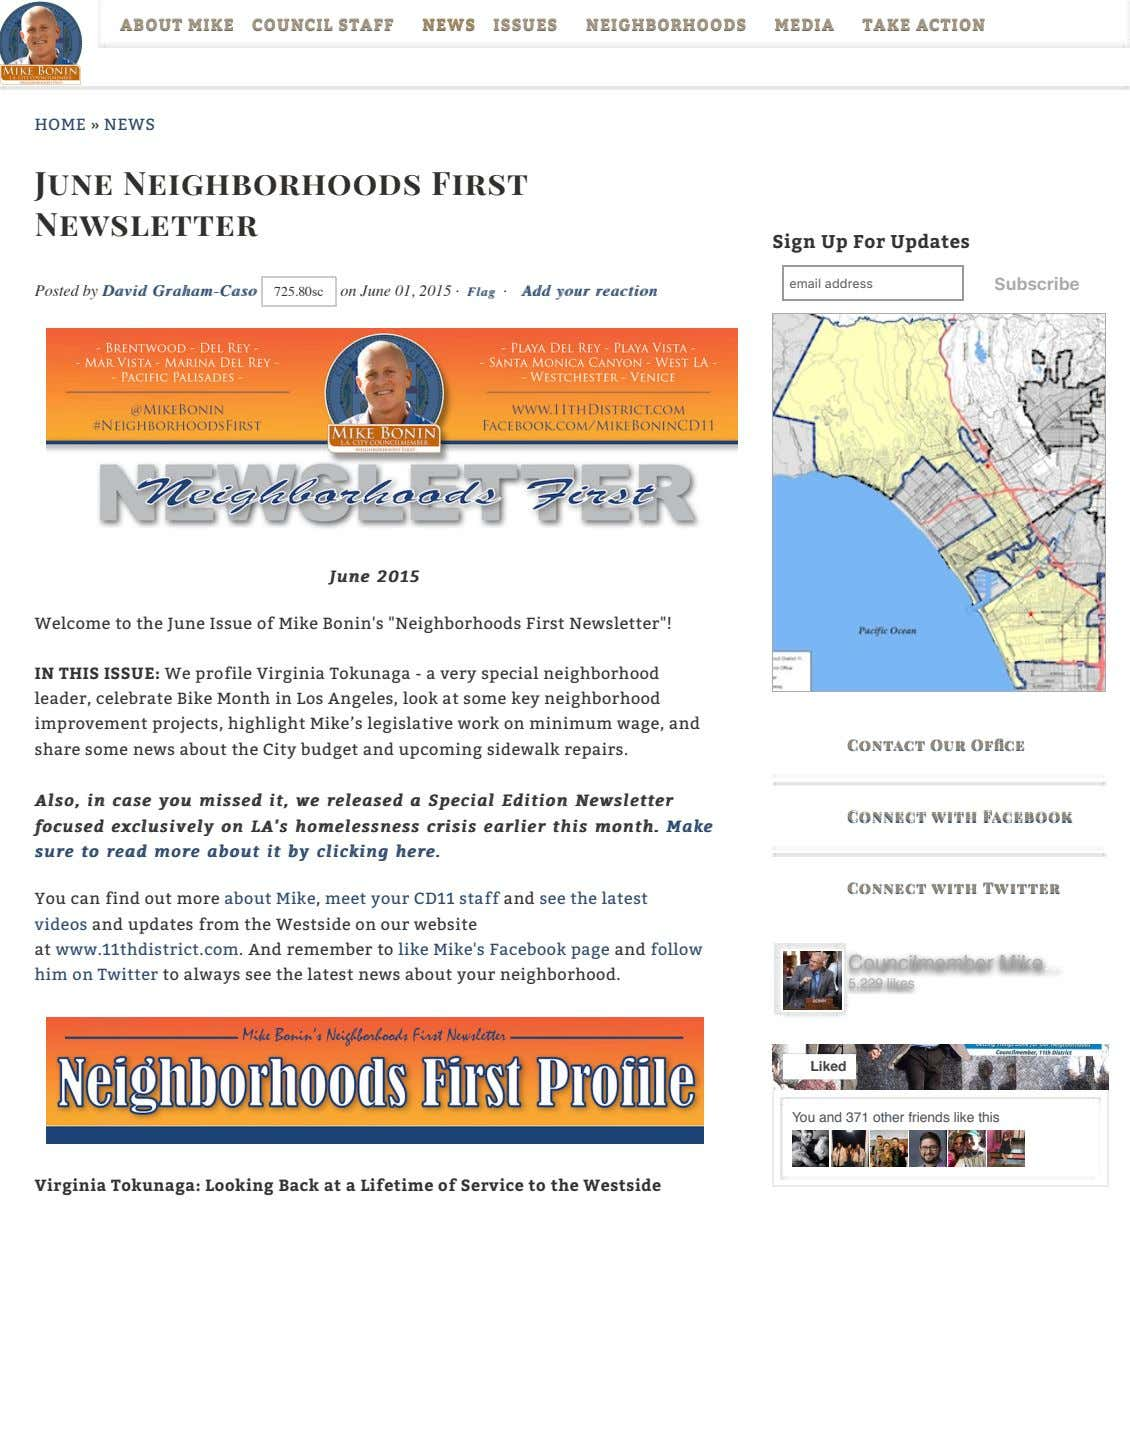 ABOUTABOUT MIKEMIKE COUNCILCOUNCIL STAFFSTAFF NEWSNEWS ISSUESISSUES NEIGHBORHOODSNEIGHBORHOODS MEDIAMEDIA TAKETAKE